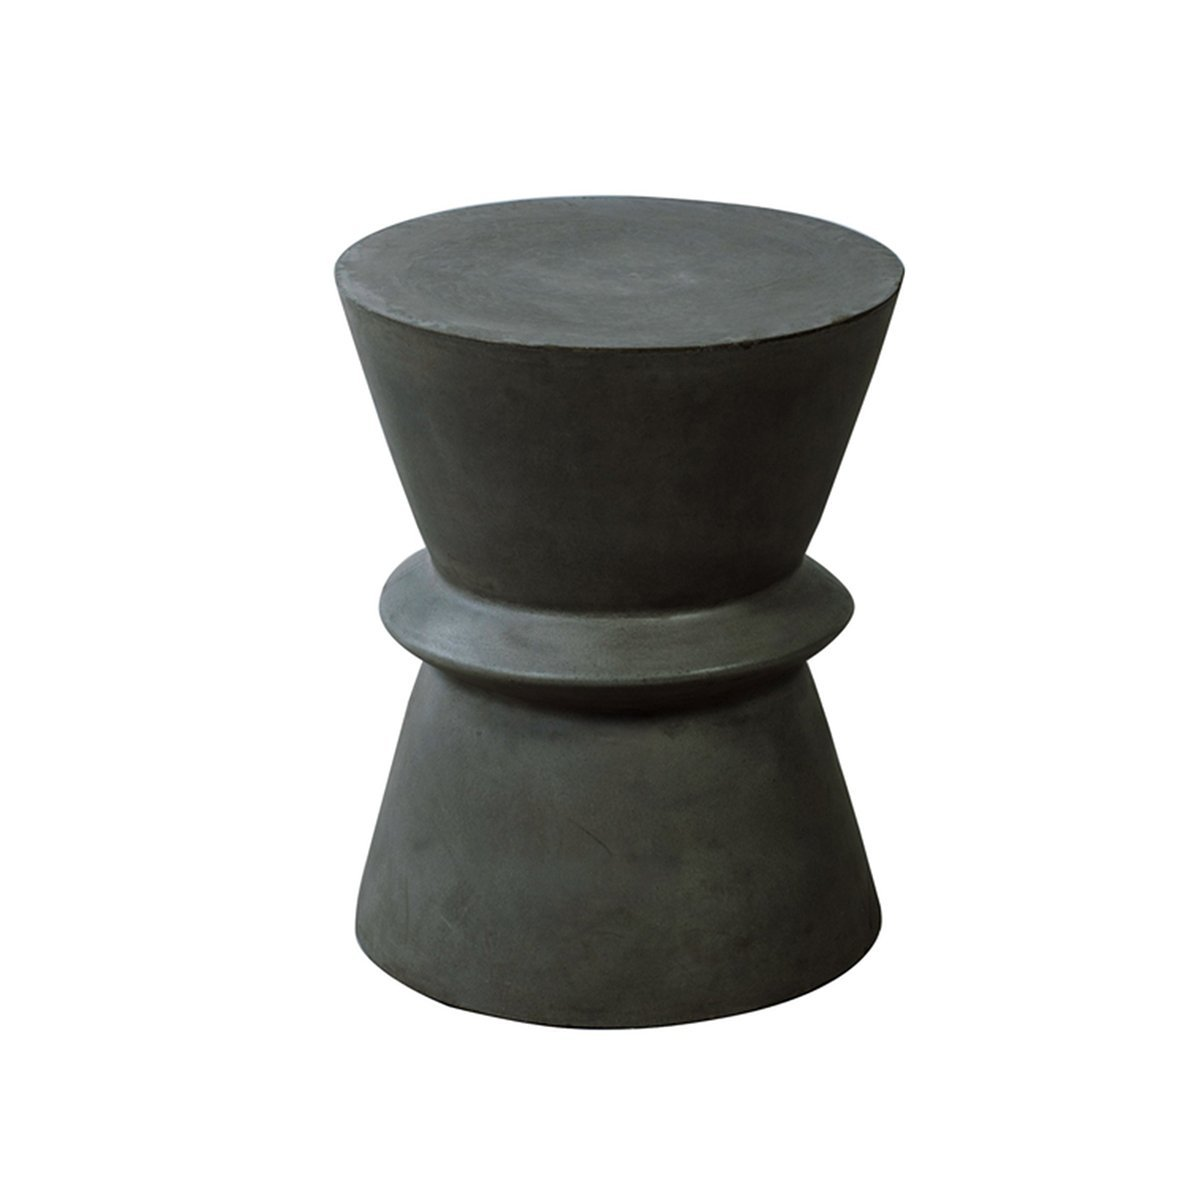 CONCRETE STOOL - Showhome Furniture